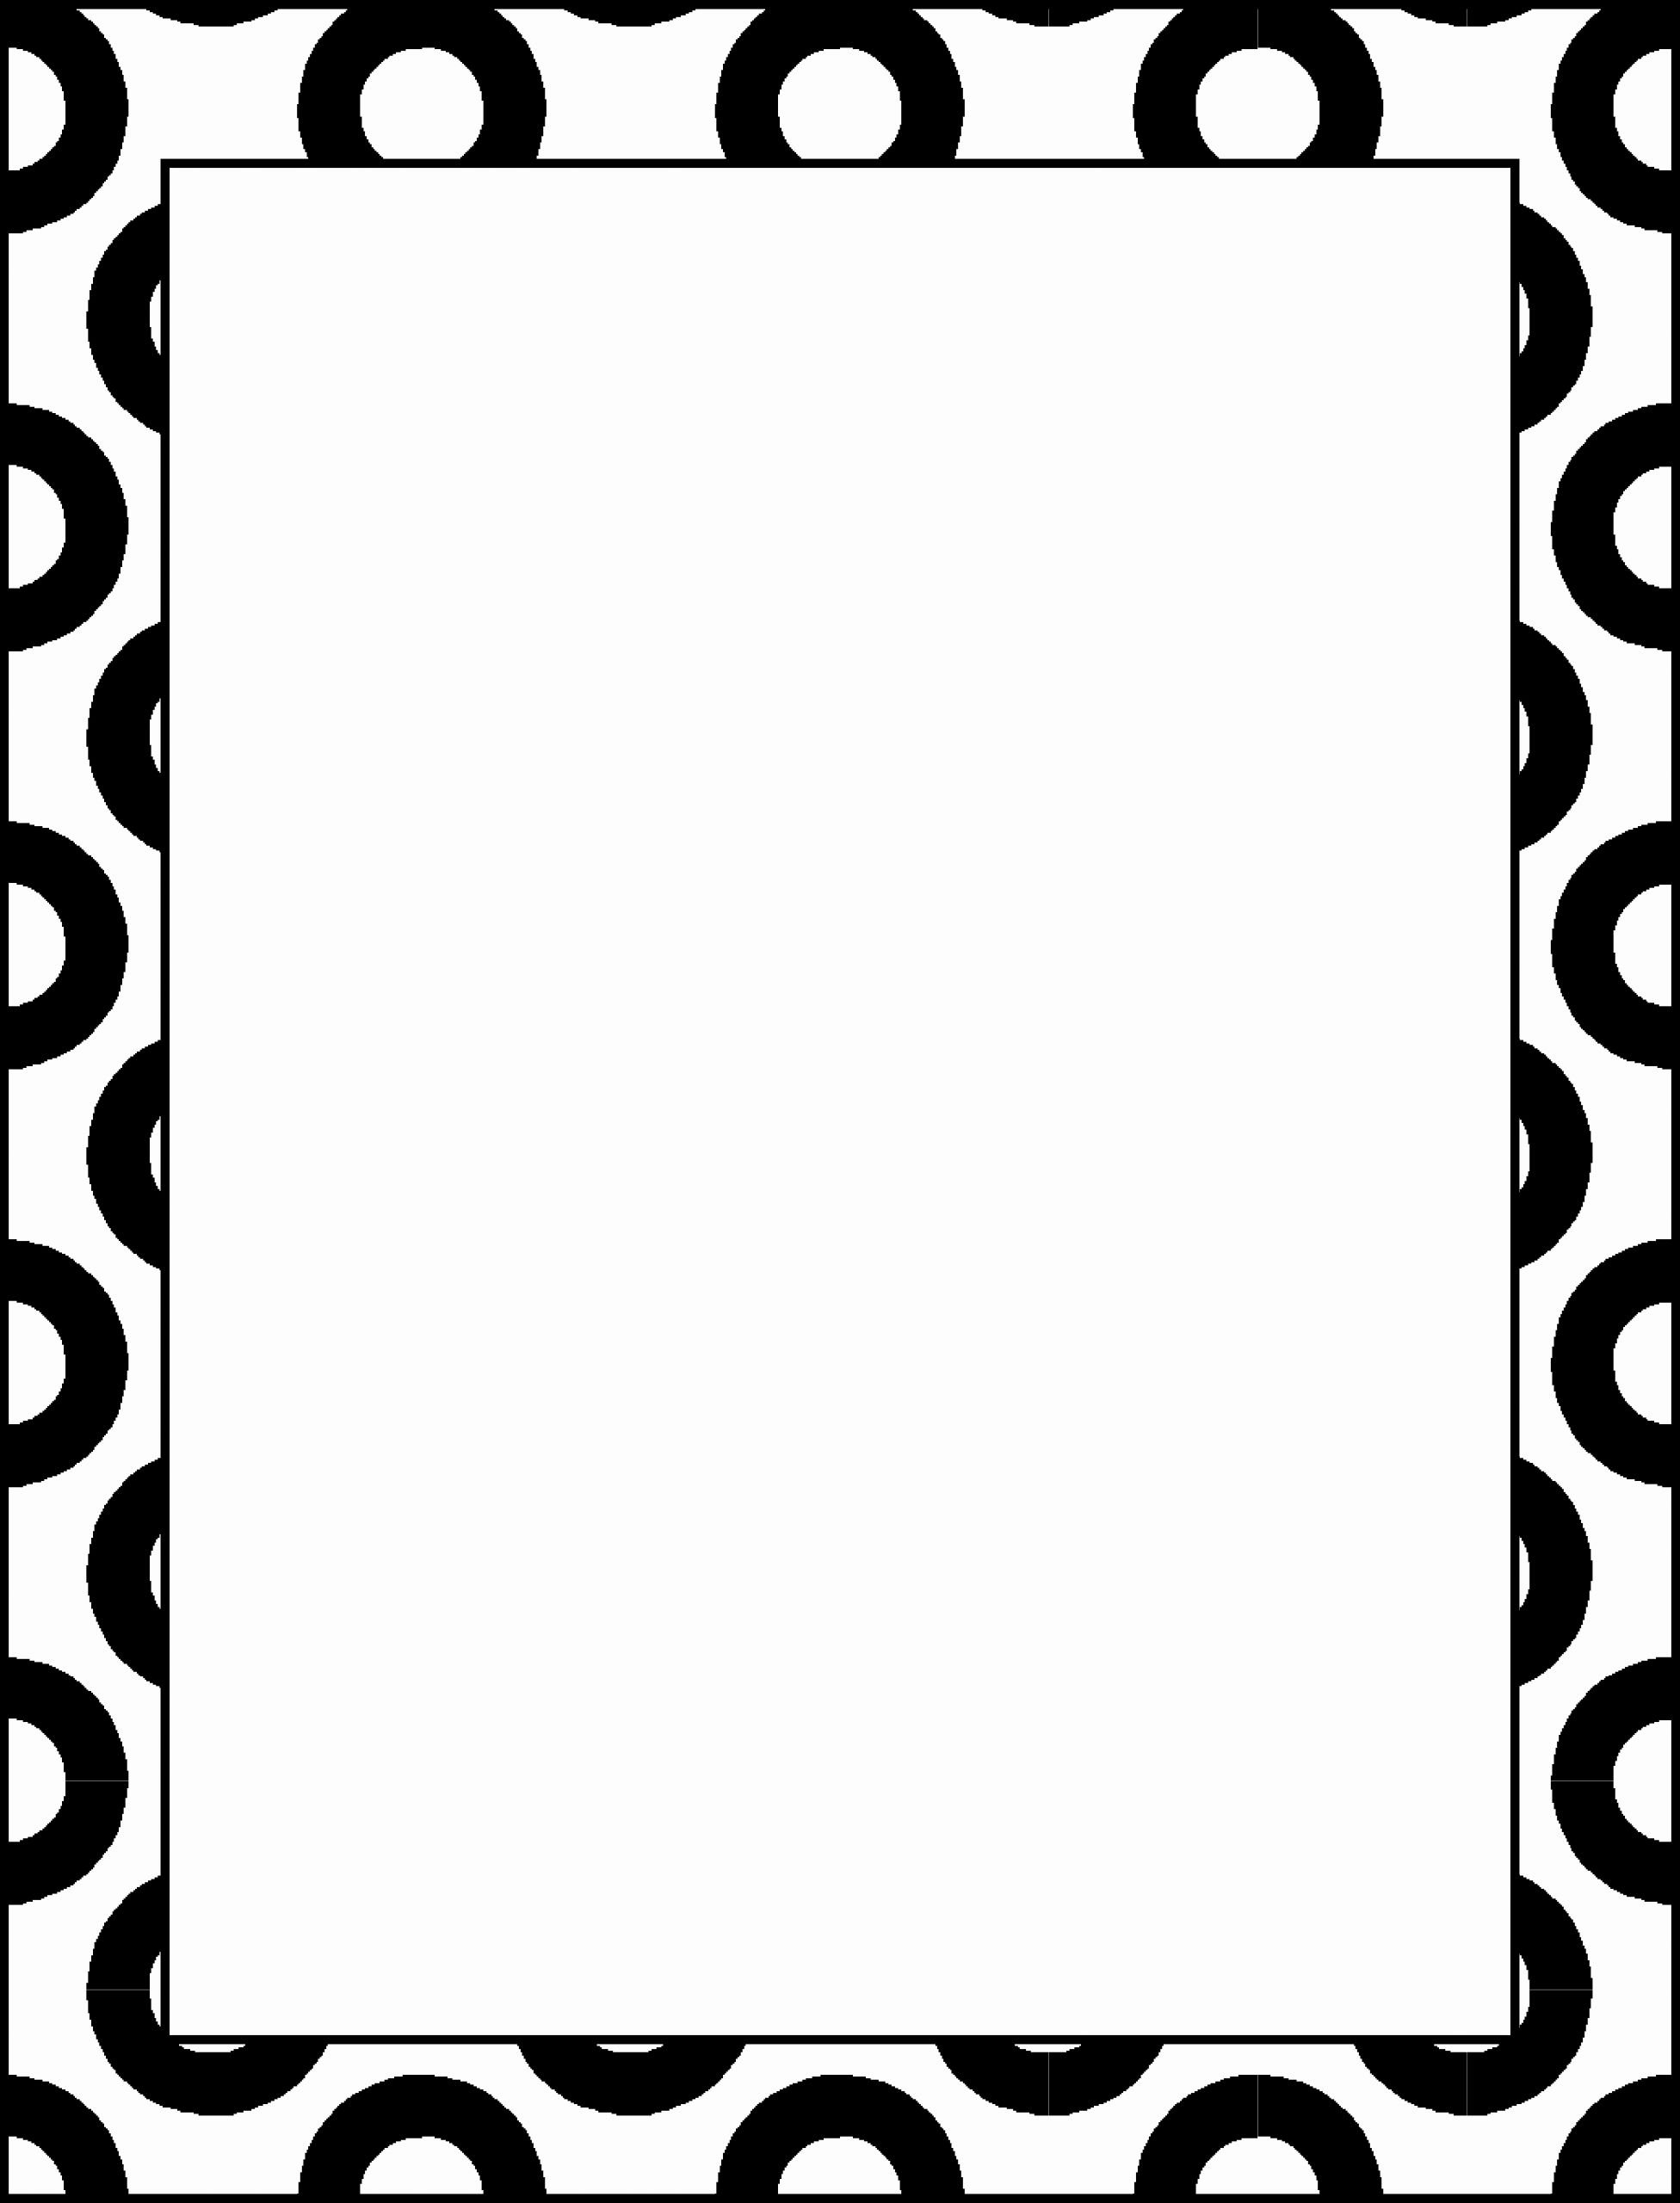 Formal Black and White Borders for Word Lovely Borders for Word Black and White Clipart Best